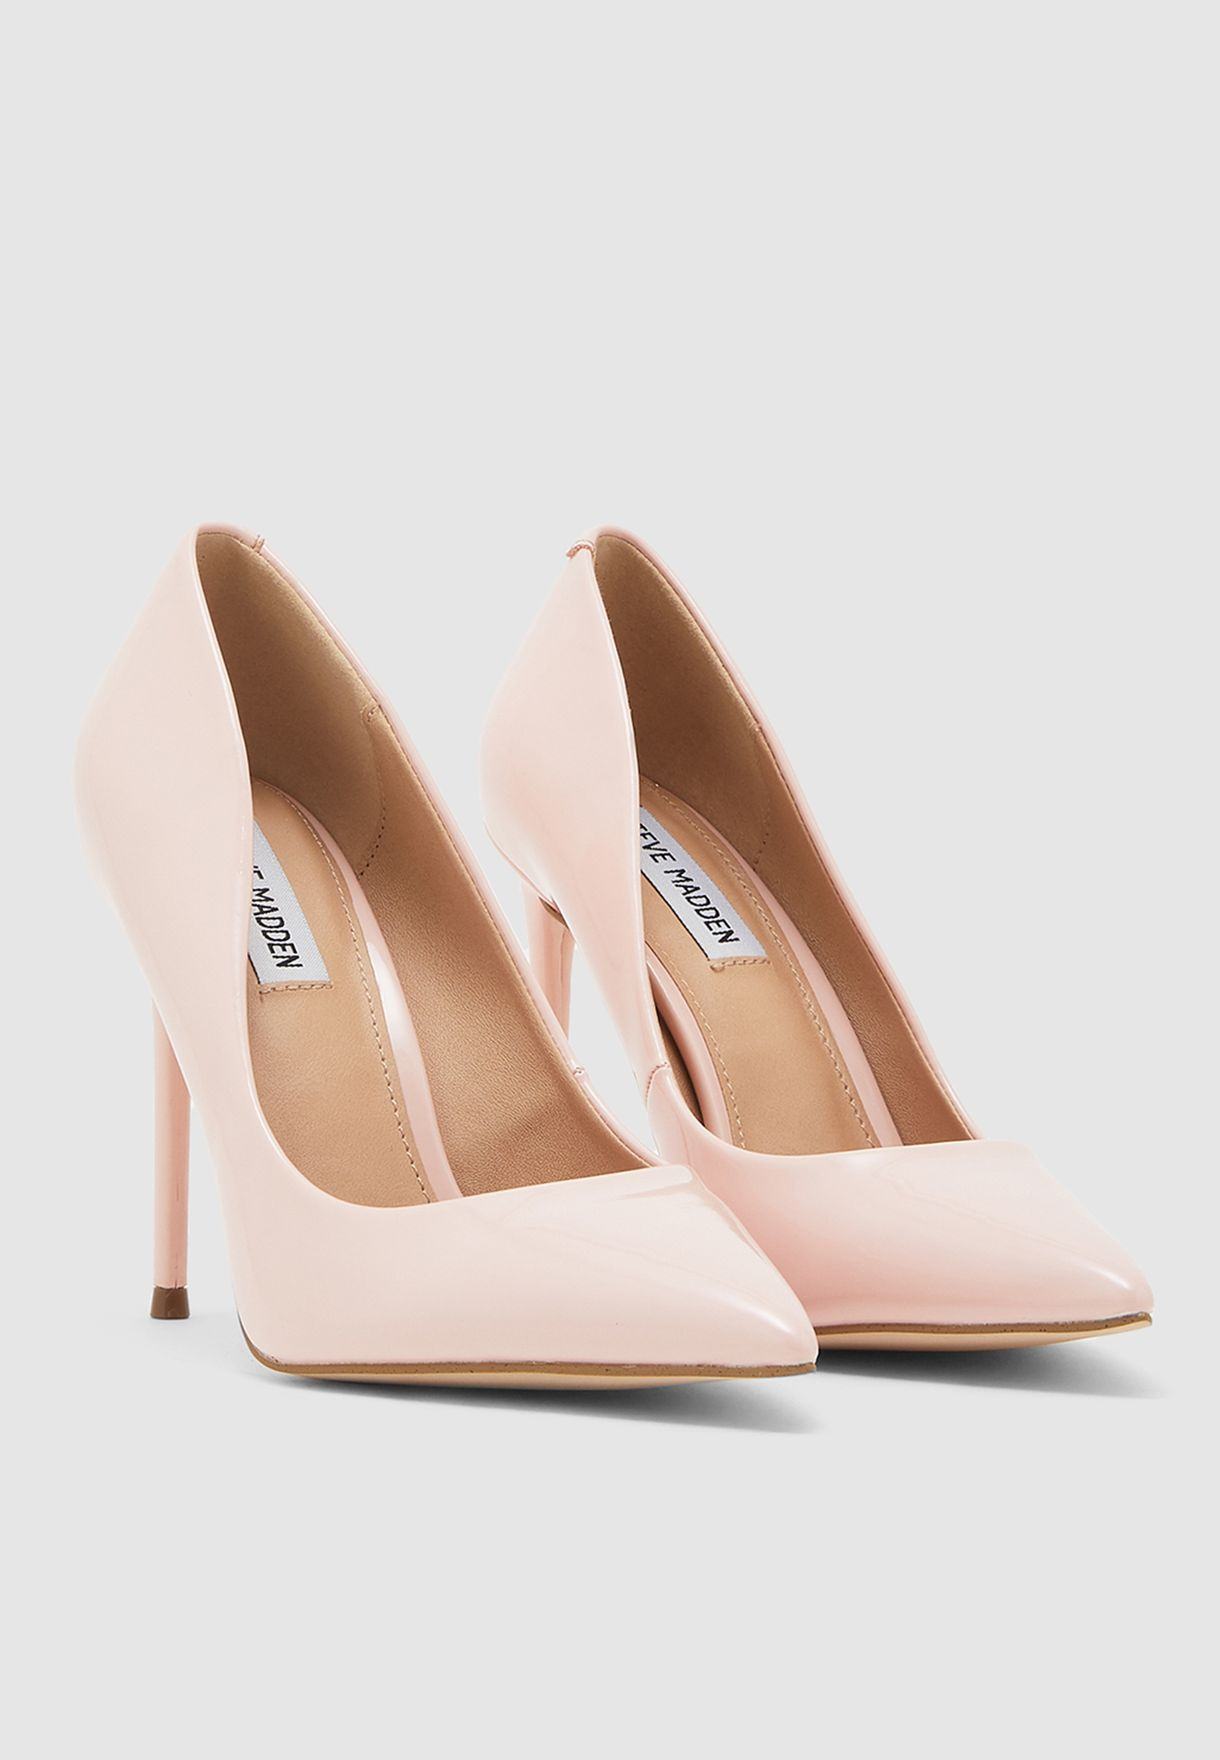 Vala High Heel Pump - Blush